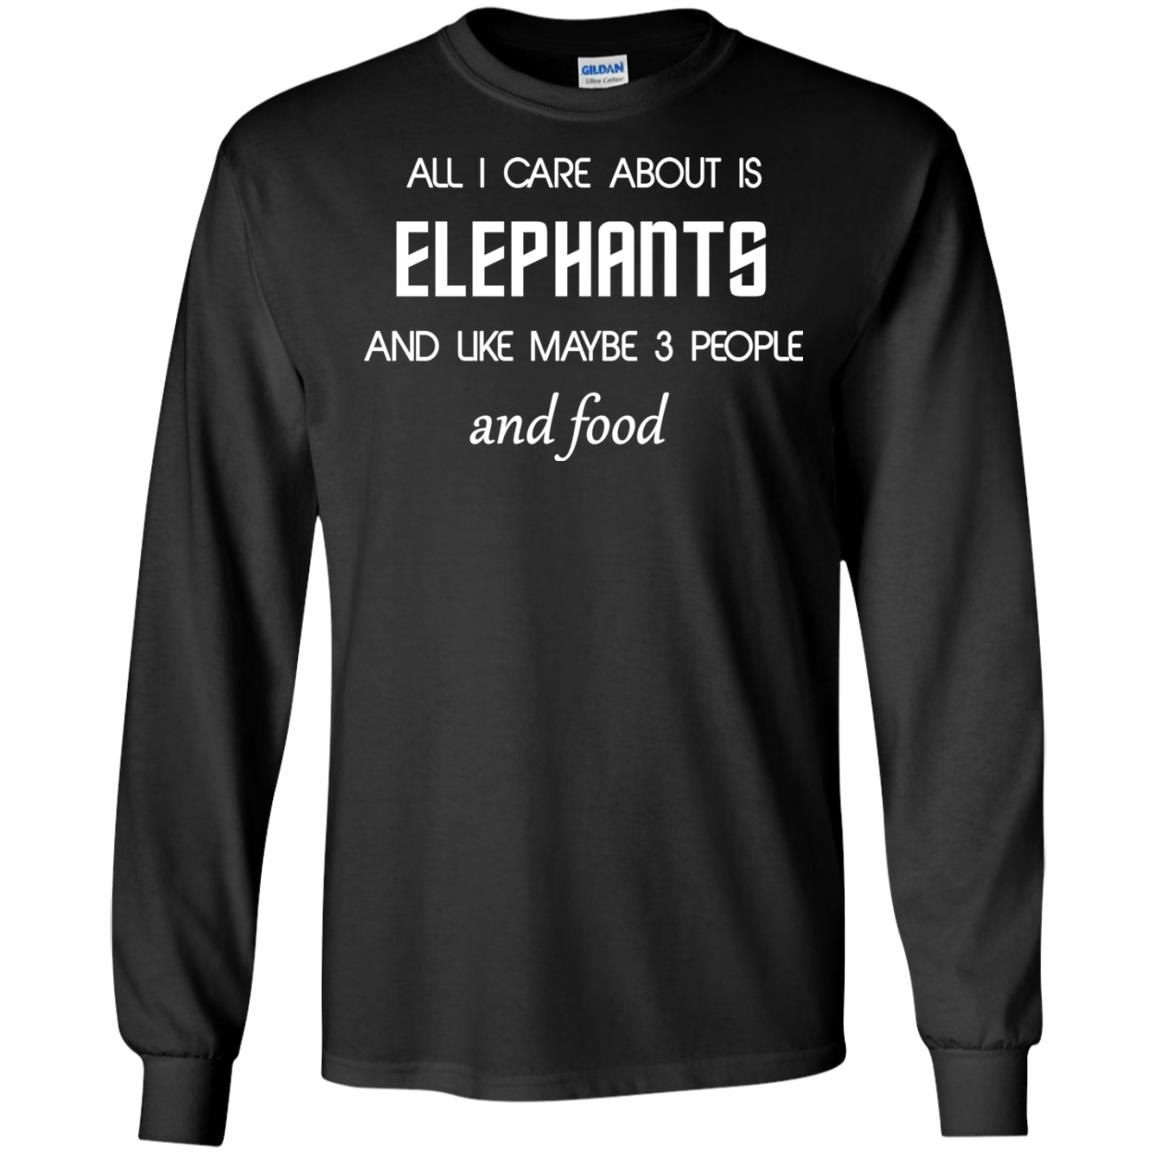 image 4195 - All I care about is elephants shirt, hoodie, sweater